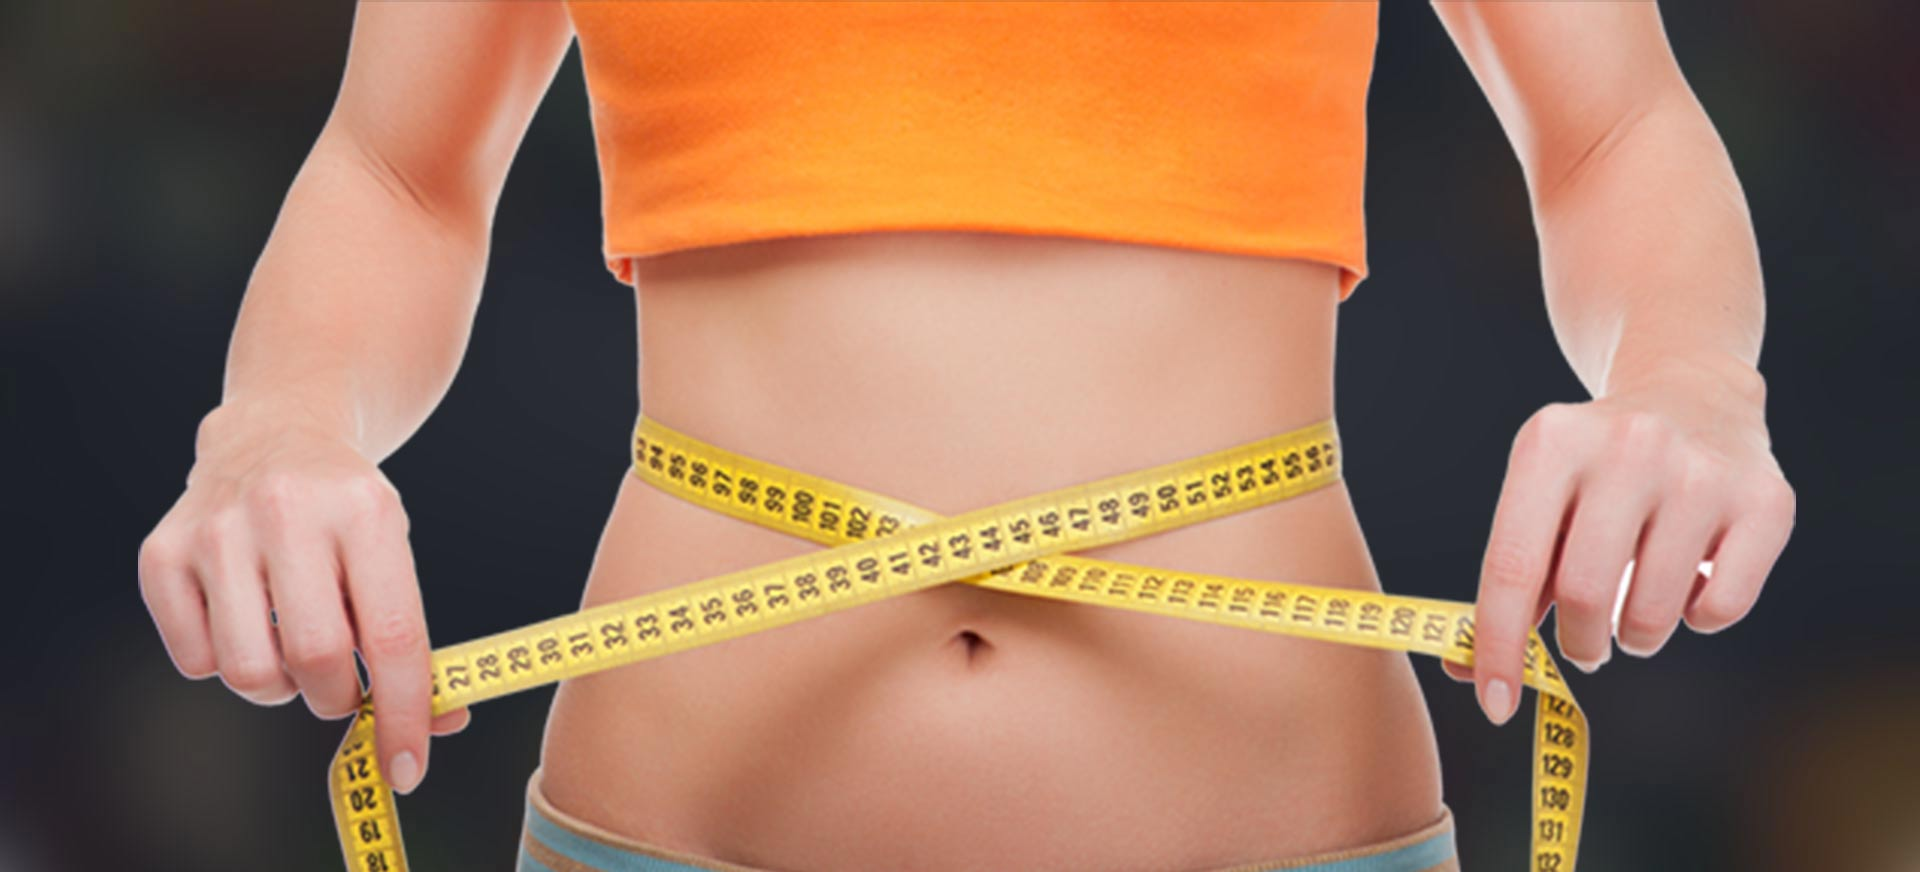 German Scientific Slim - A New Way For Permanent Weight Loss